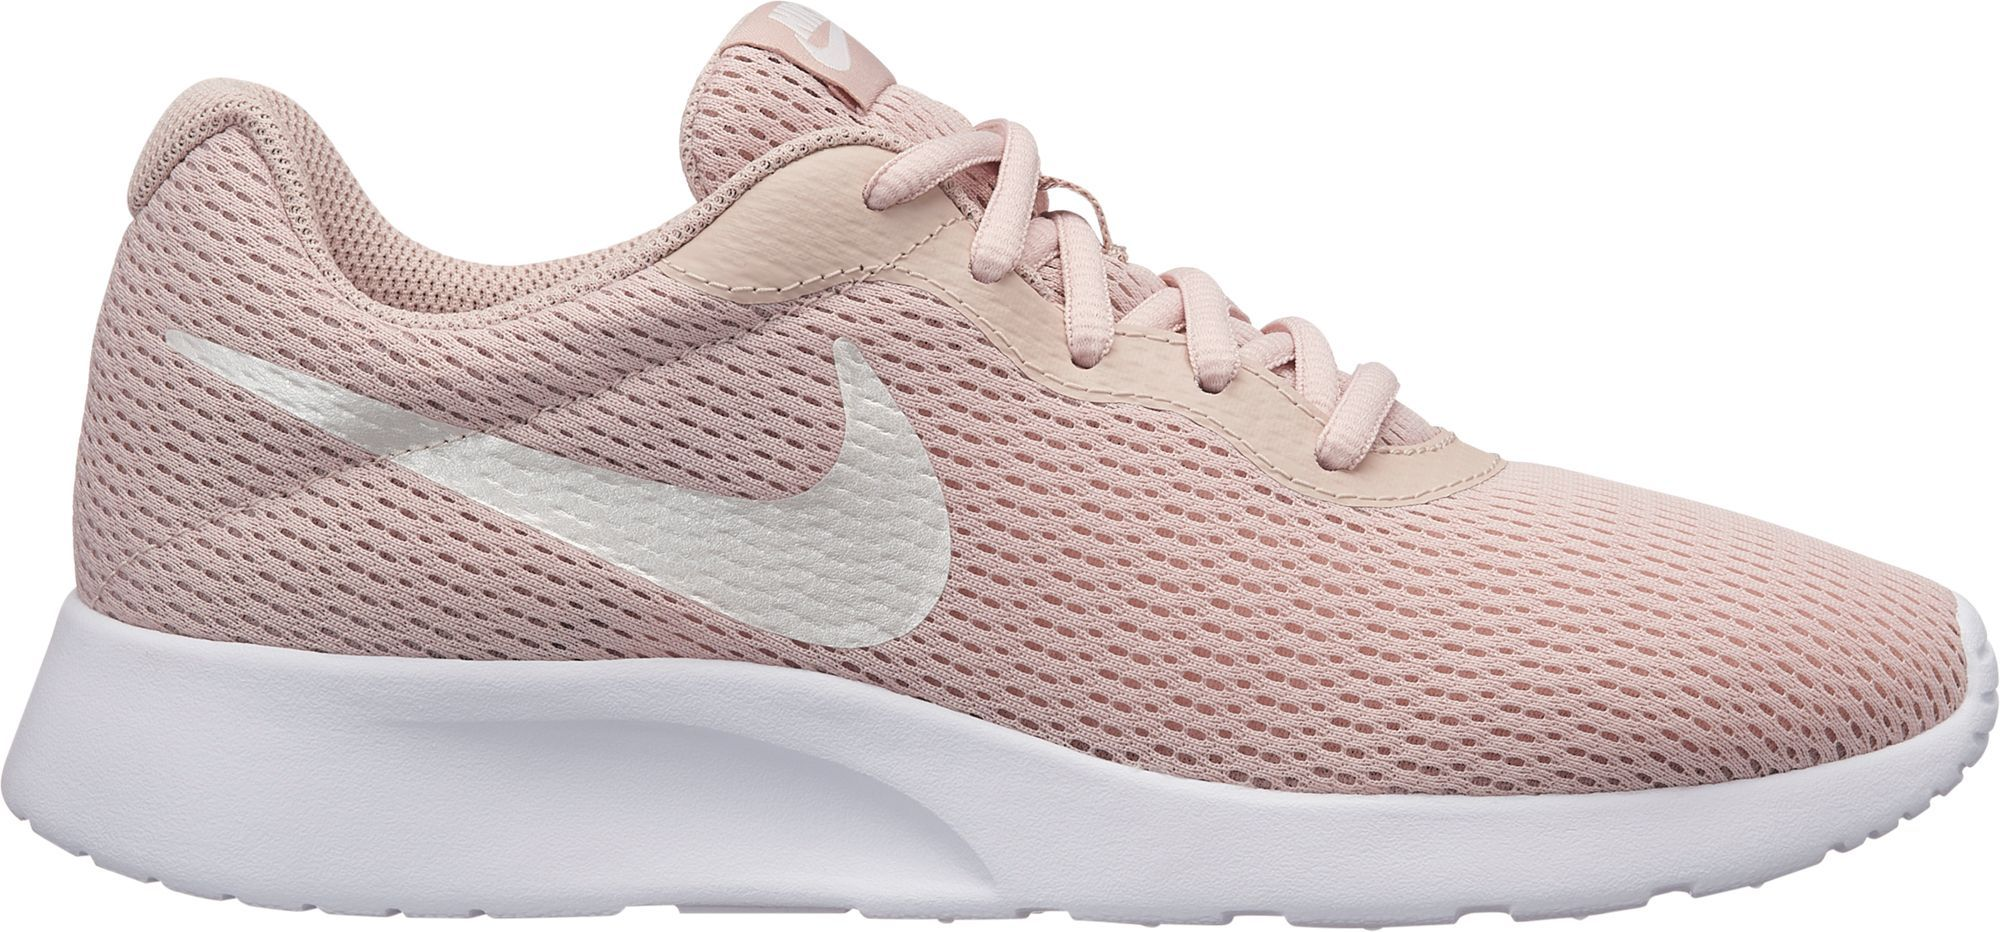 Nike Women's Tanjun Shoes | Nike women, Nike, Lacing shoes ...